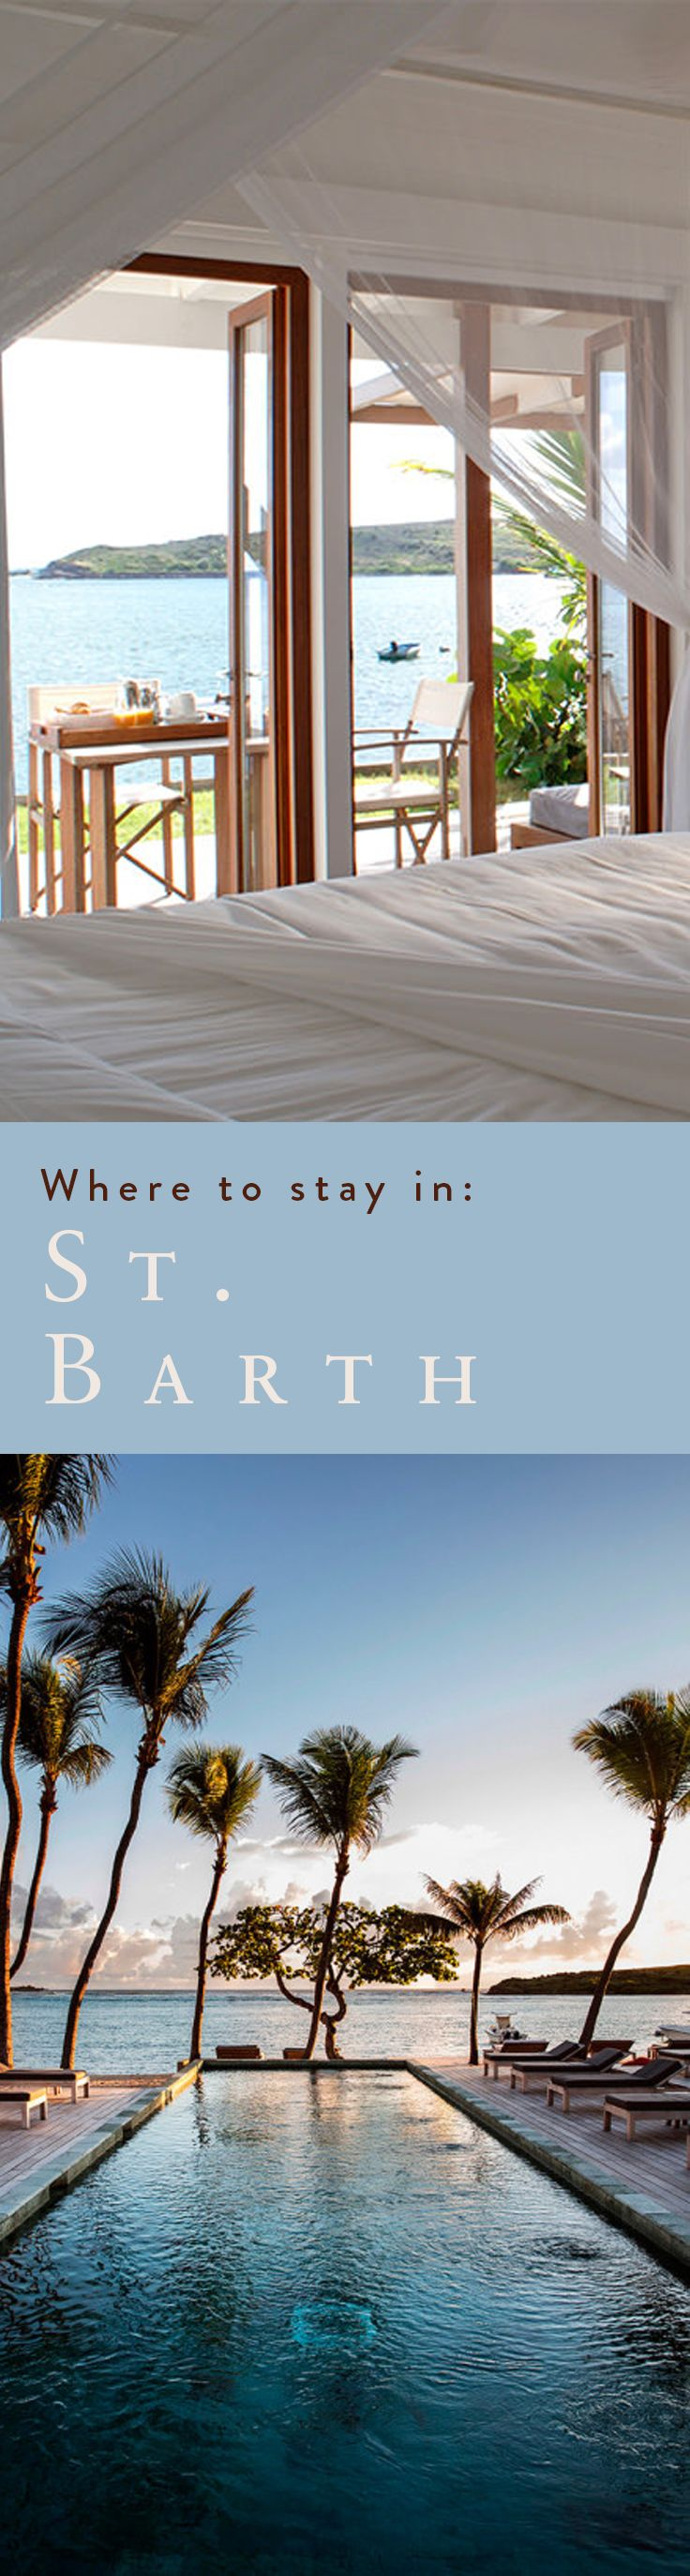 Practice the art of the getaway at these heavenly St. Barth stays. From villa rentals to 5-star hotels, these are our top picks.